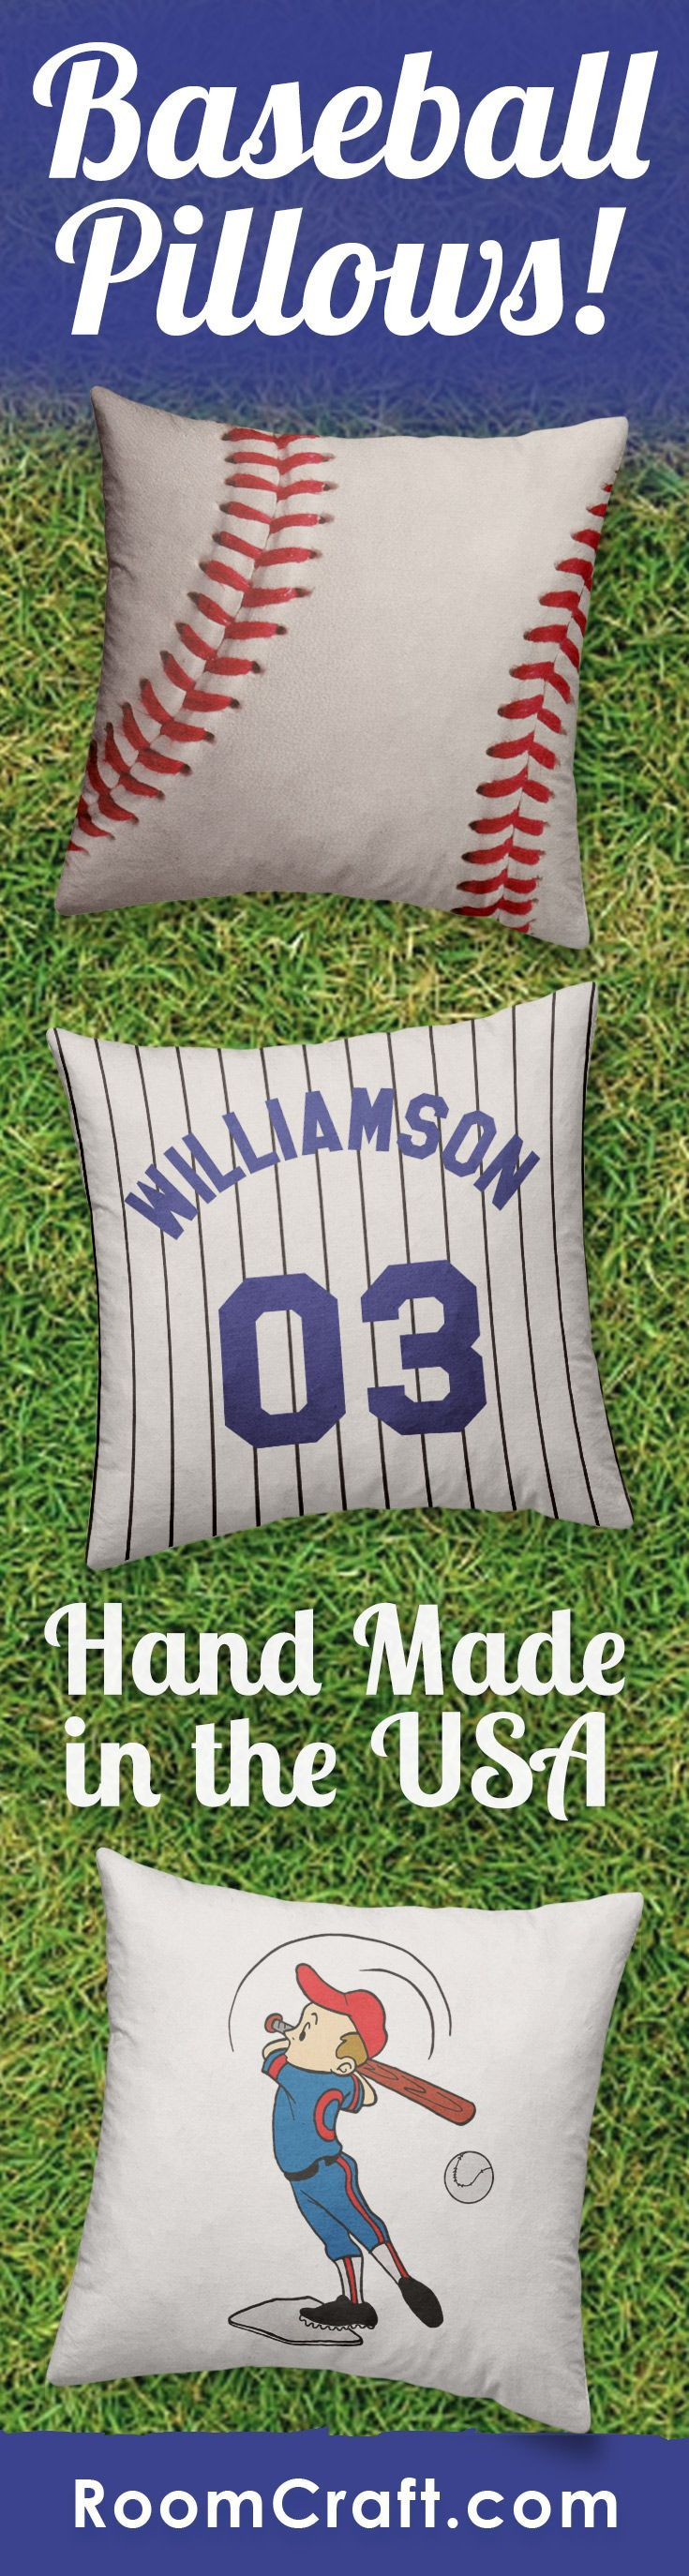 Score a home run with the athlete in your family with these baseball throw pillows. Our sports throw pillows are all offered in multiple fabrics, colors, and sizes making them the perfect addition to any bedroom, game room, or man cave. Our quality base ball pillow covers are made to order in the USA and feature 3 wooden buttons on the back for closure. Choose your favorite and create a truly unique pillow set. #roomcraft